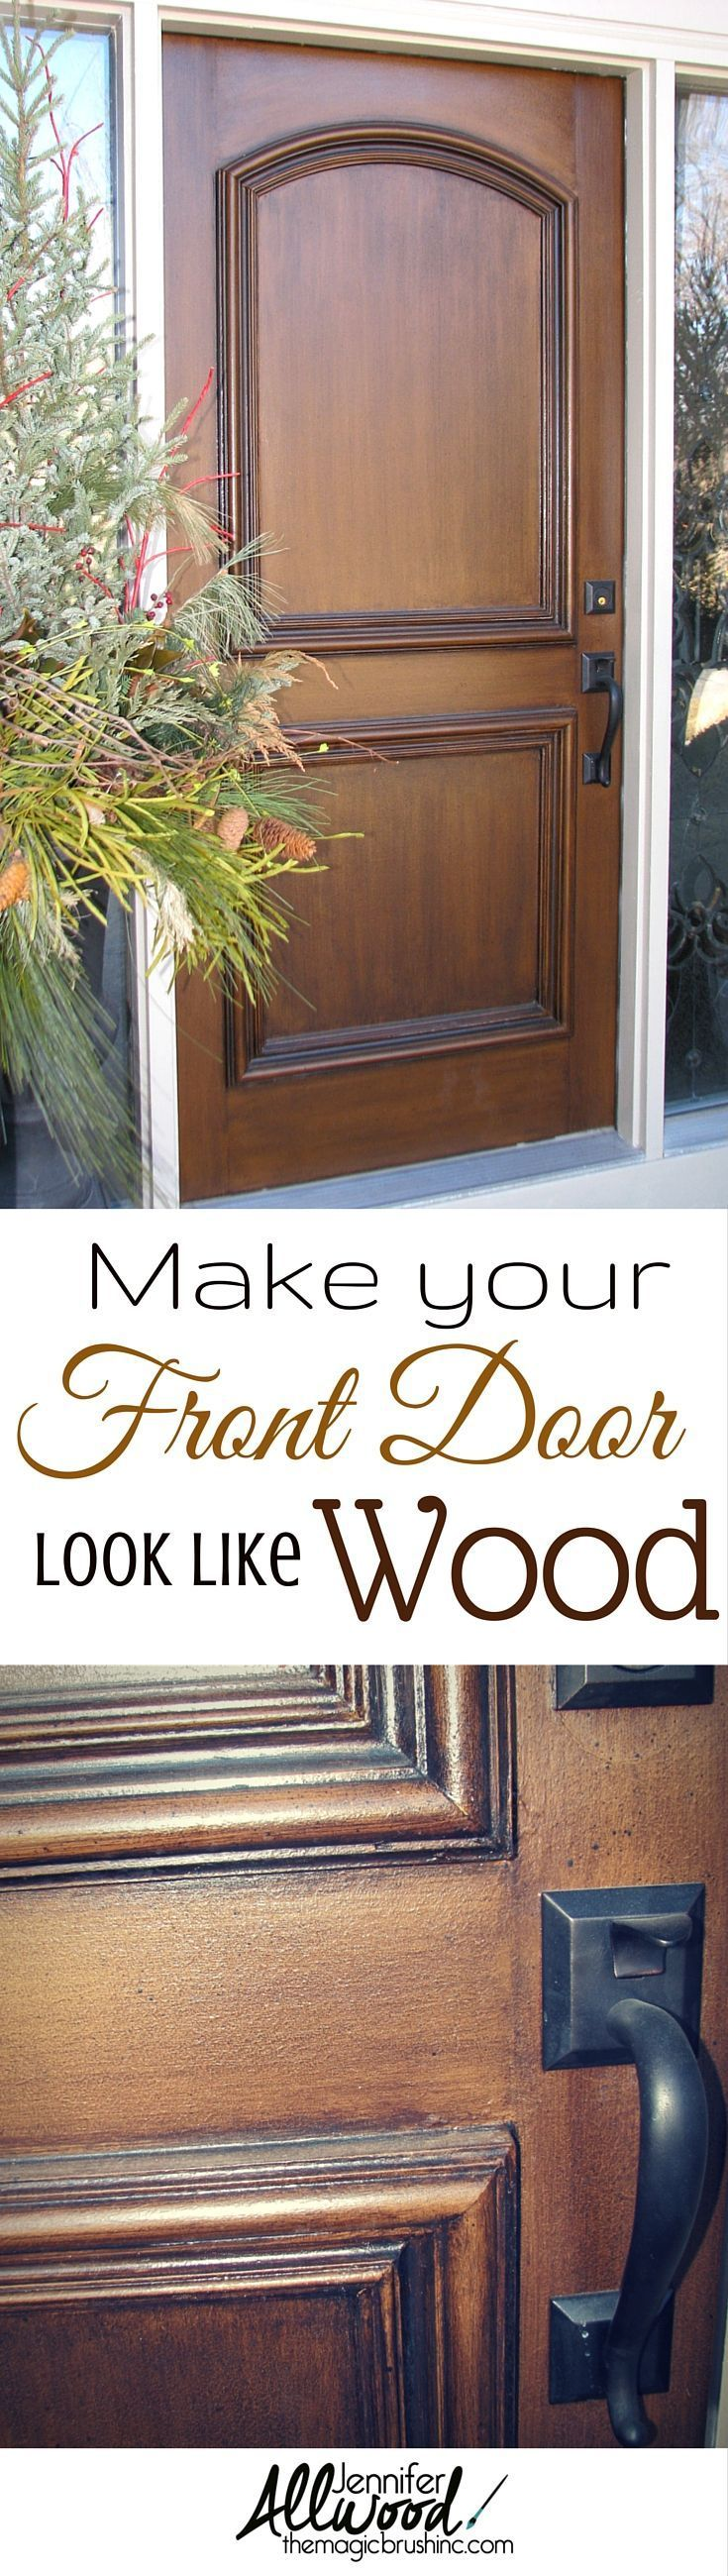 Improve your house's curb appeal! Here's a easy front porch makeover -- just make your front door look like real wood! This how-to video teaches you how to stain your door to look like expensive, authentic, stained wood.